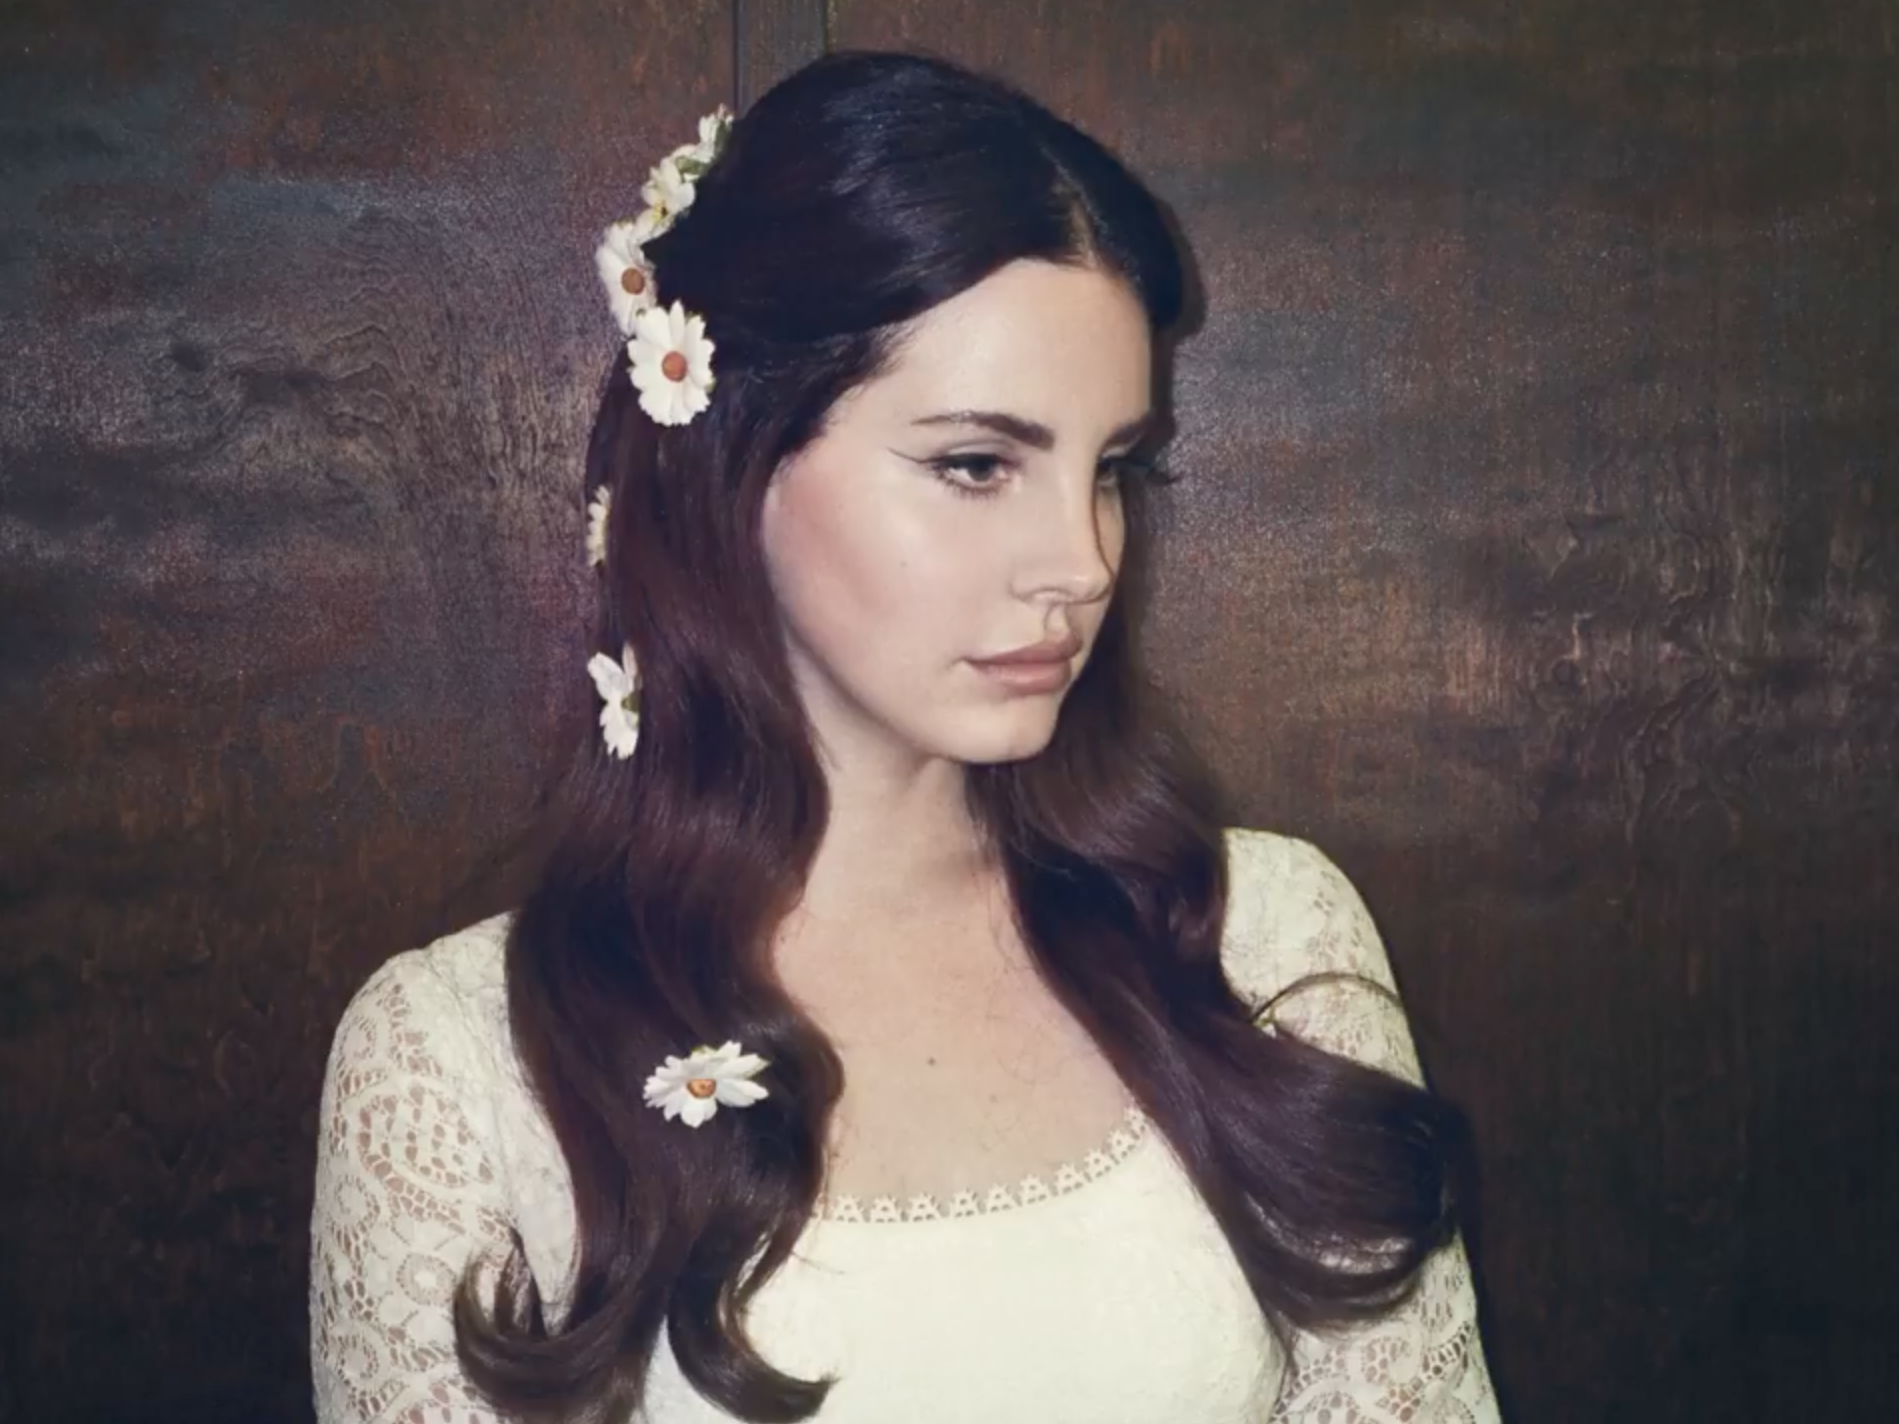 Lana Del Rey releases new song, 'Coachella - Woodstock In My Mind'